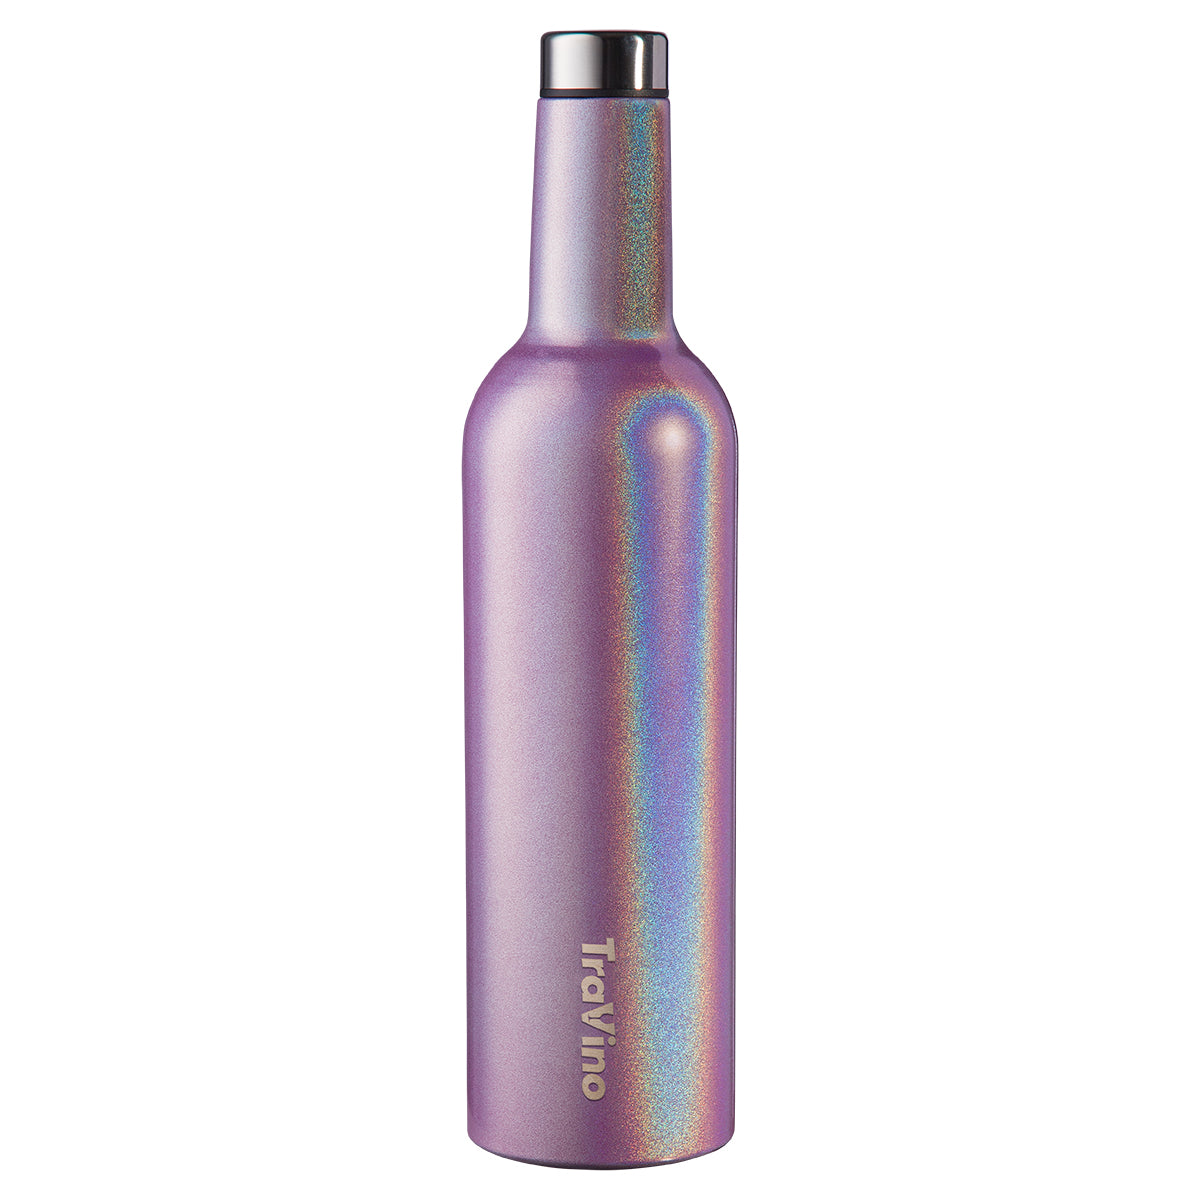 TraVino Insulated Wine Flask - 750mL - Ultra Violet (Glitter)